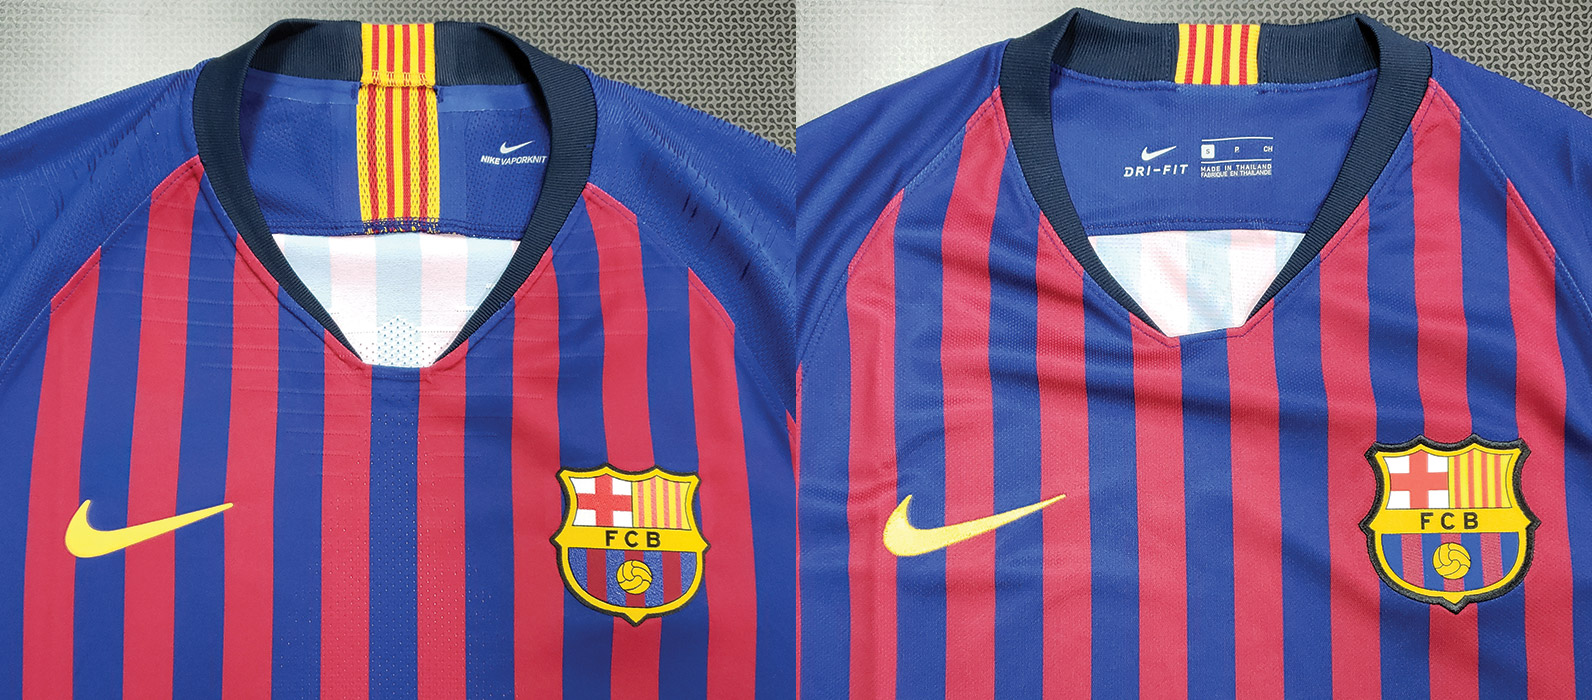 ab5afb3a6 Authentic vs. Replica Soccer Jerseys - AuthenticSoccer.com